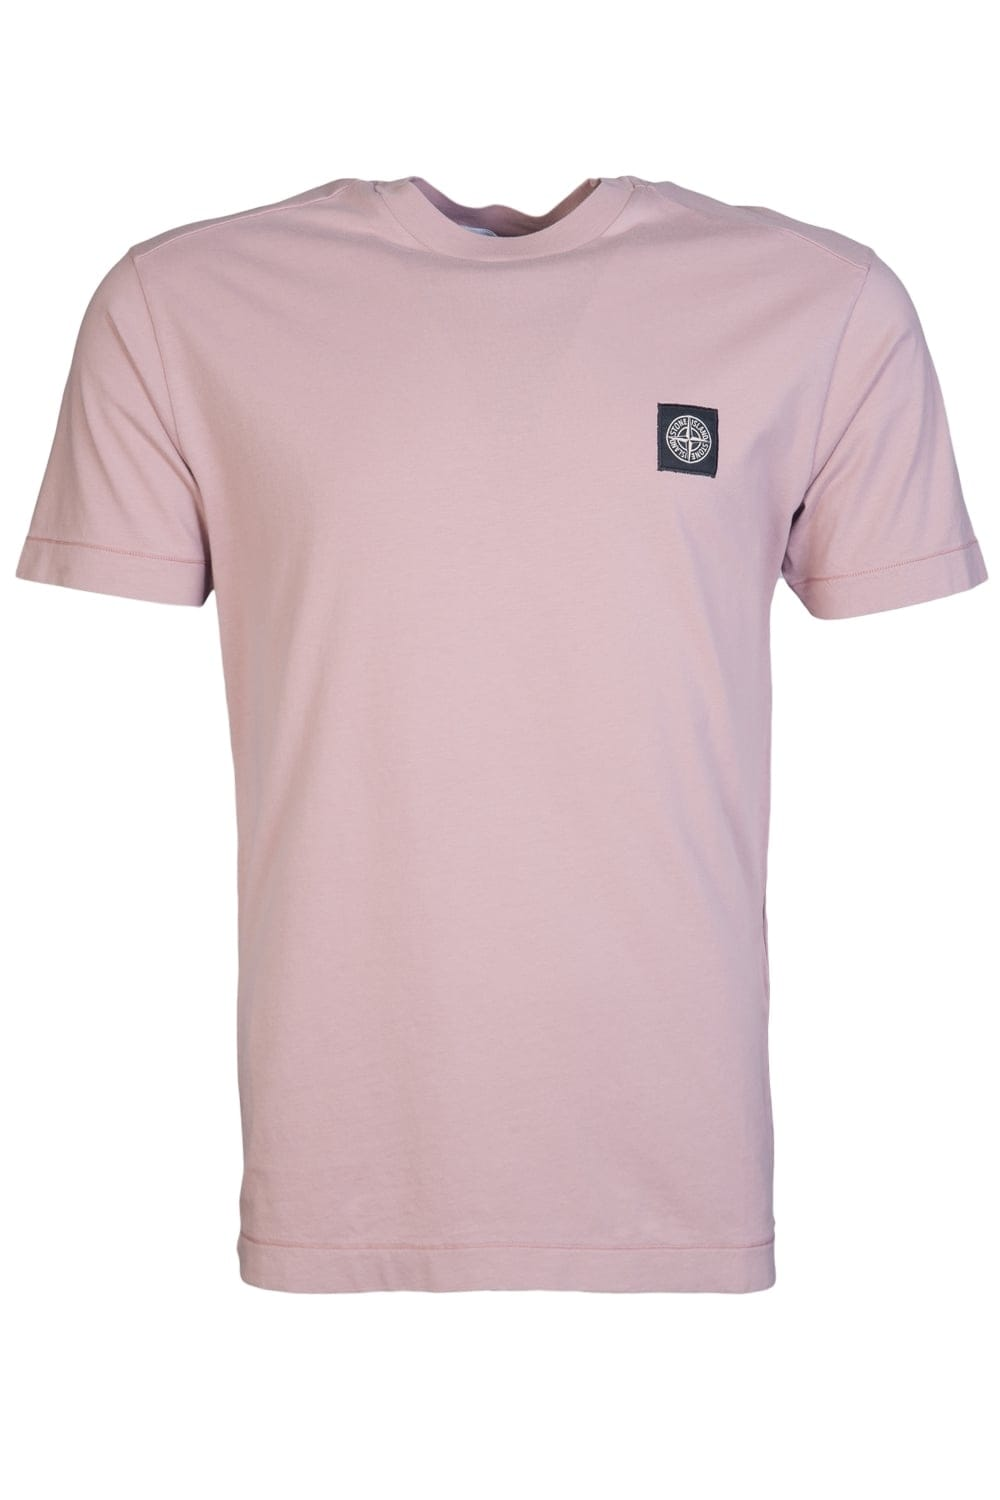 Stone Island T-shirt 651524141 - Clothing from Sage Clothing UK 7af38f6b0